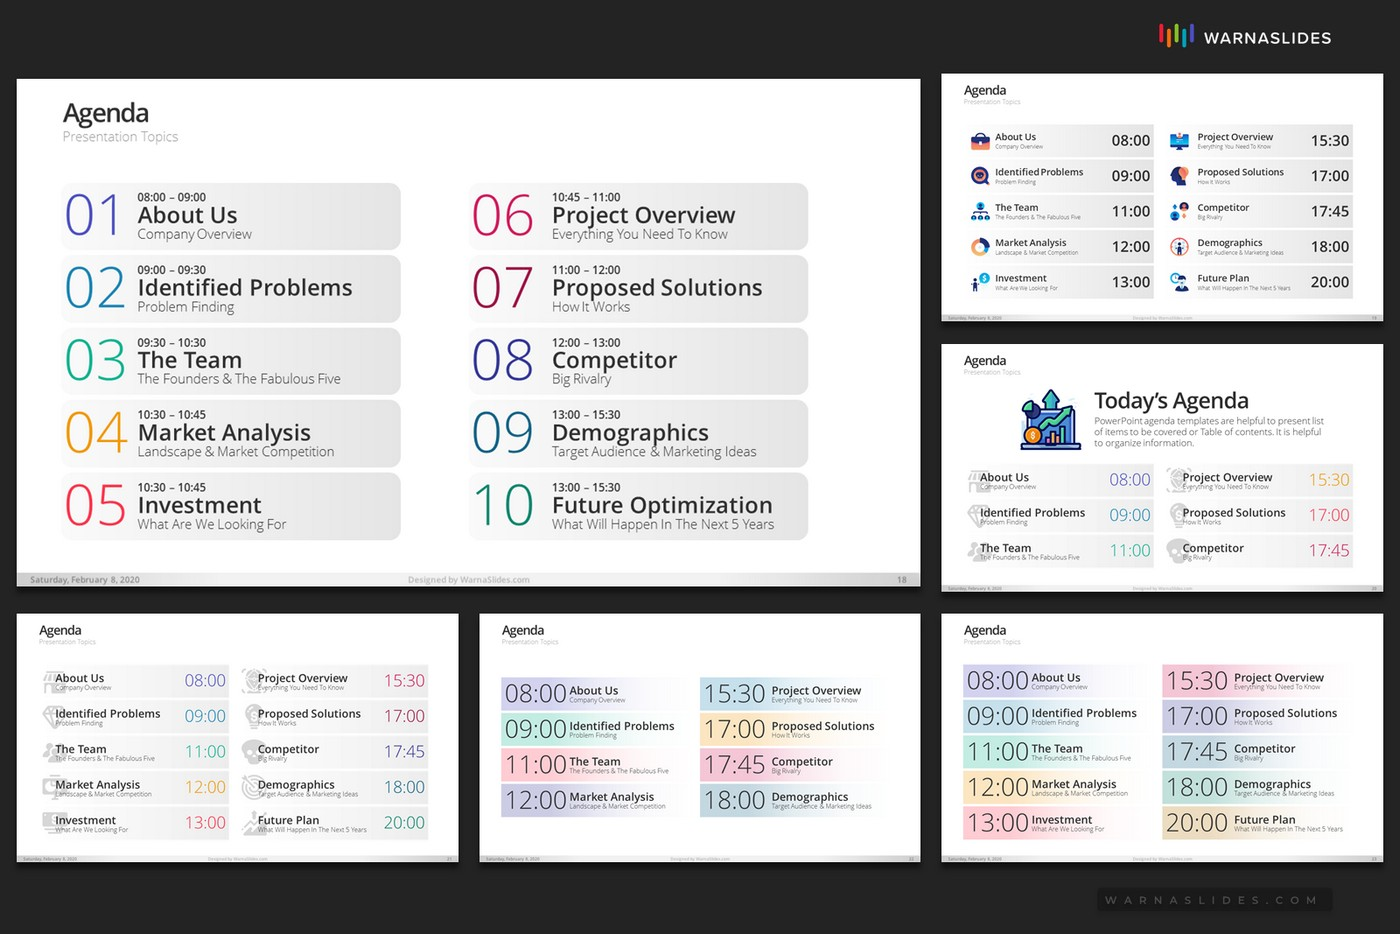 Agenda-Meeting-PowerPoint-Template-2020-for-Business-Pitch-Deck-Professional-Creative-Presentation-by-Warna-Slides-009